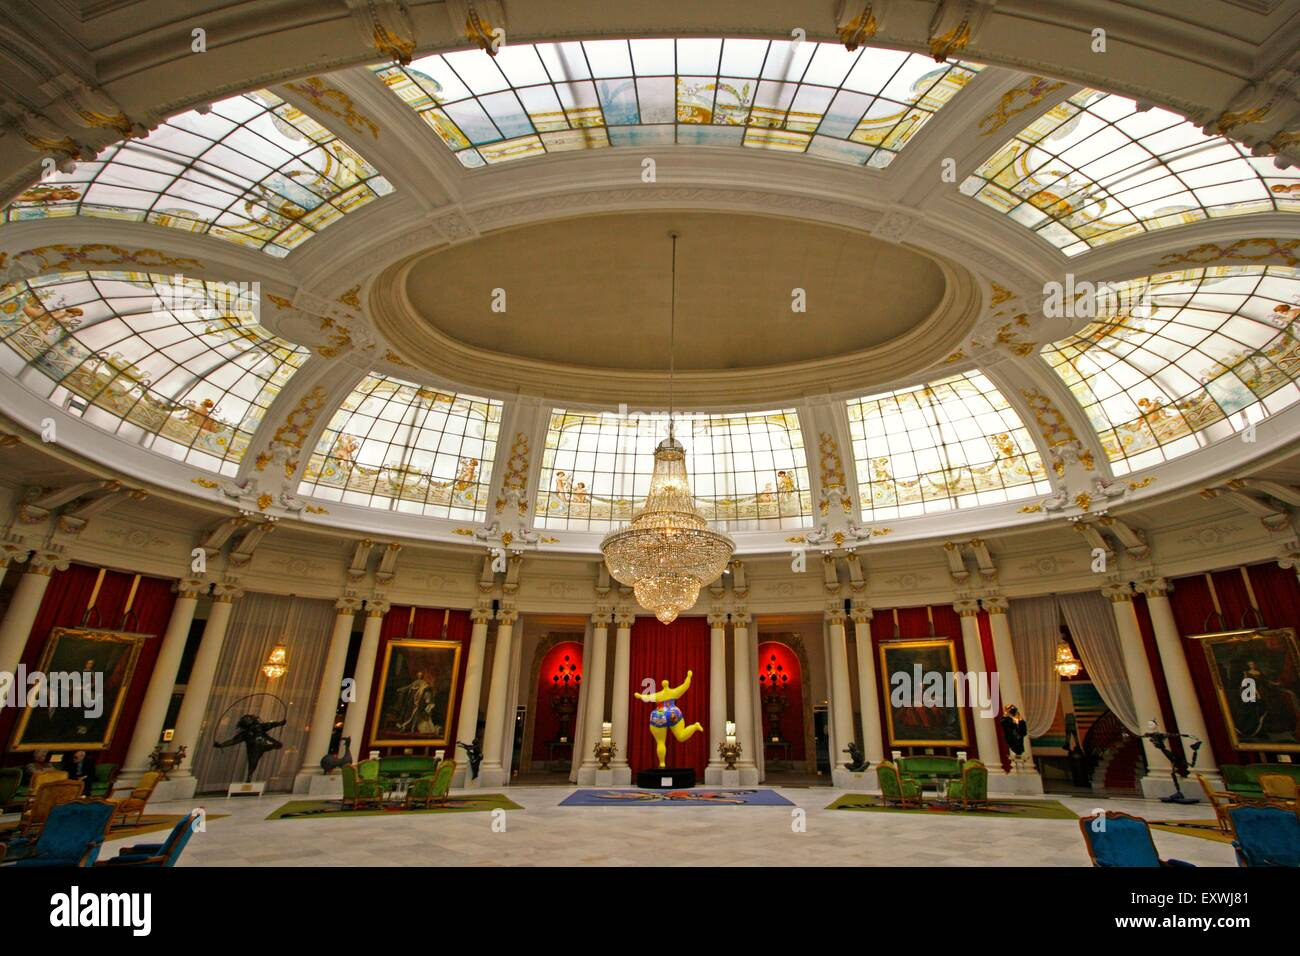 Interior of hotel negresco nice france stock photo for Interieur cours nice